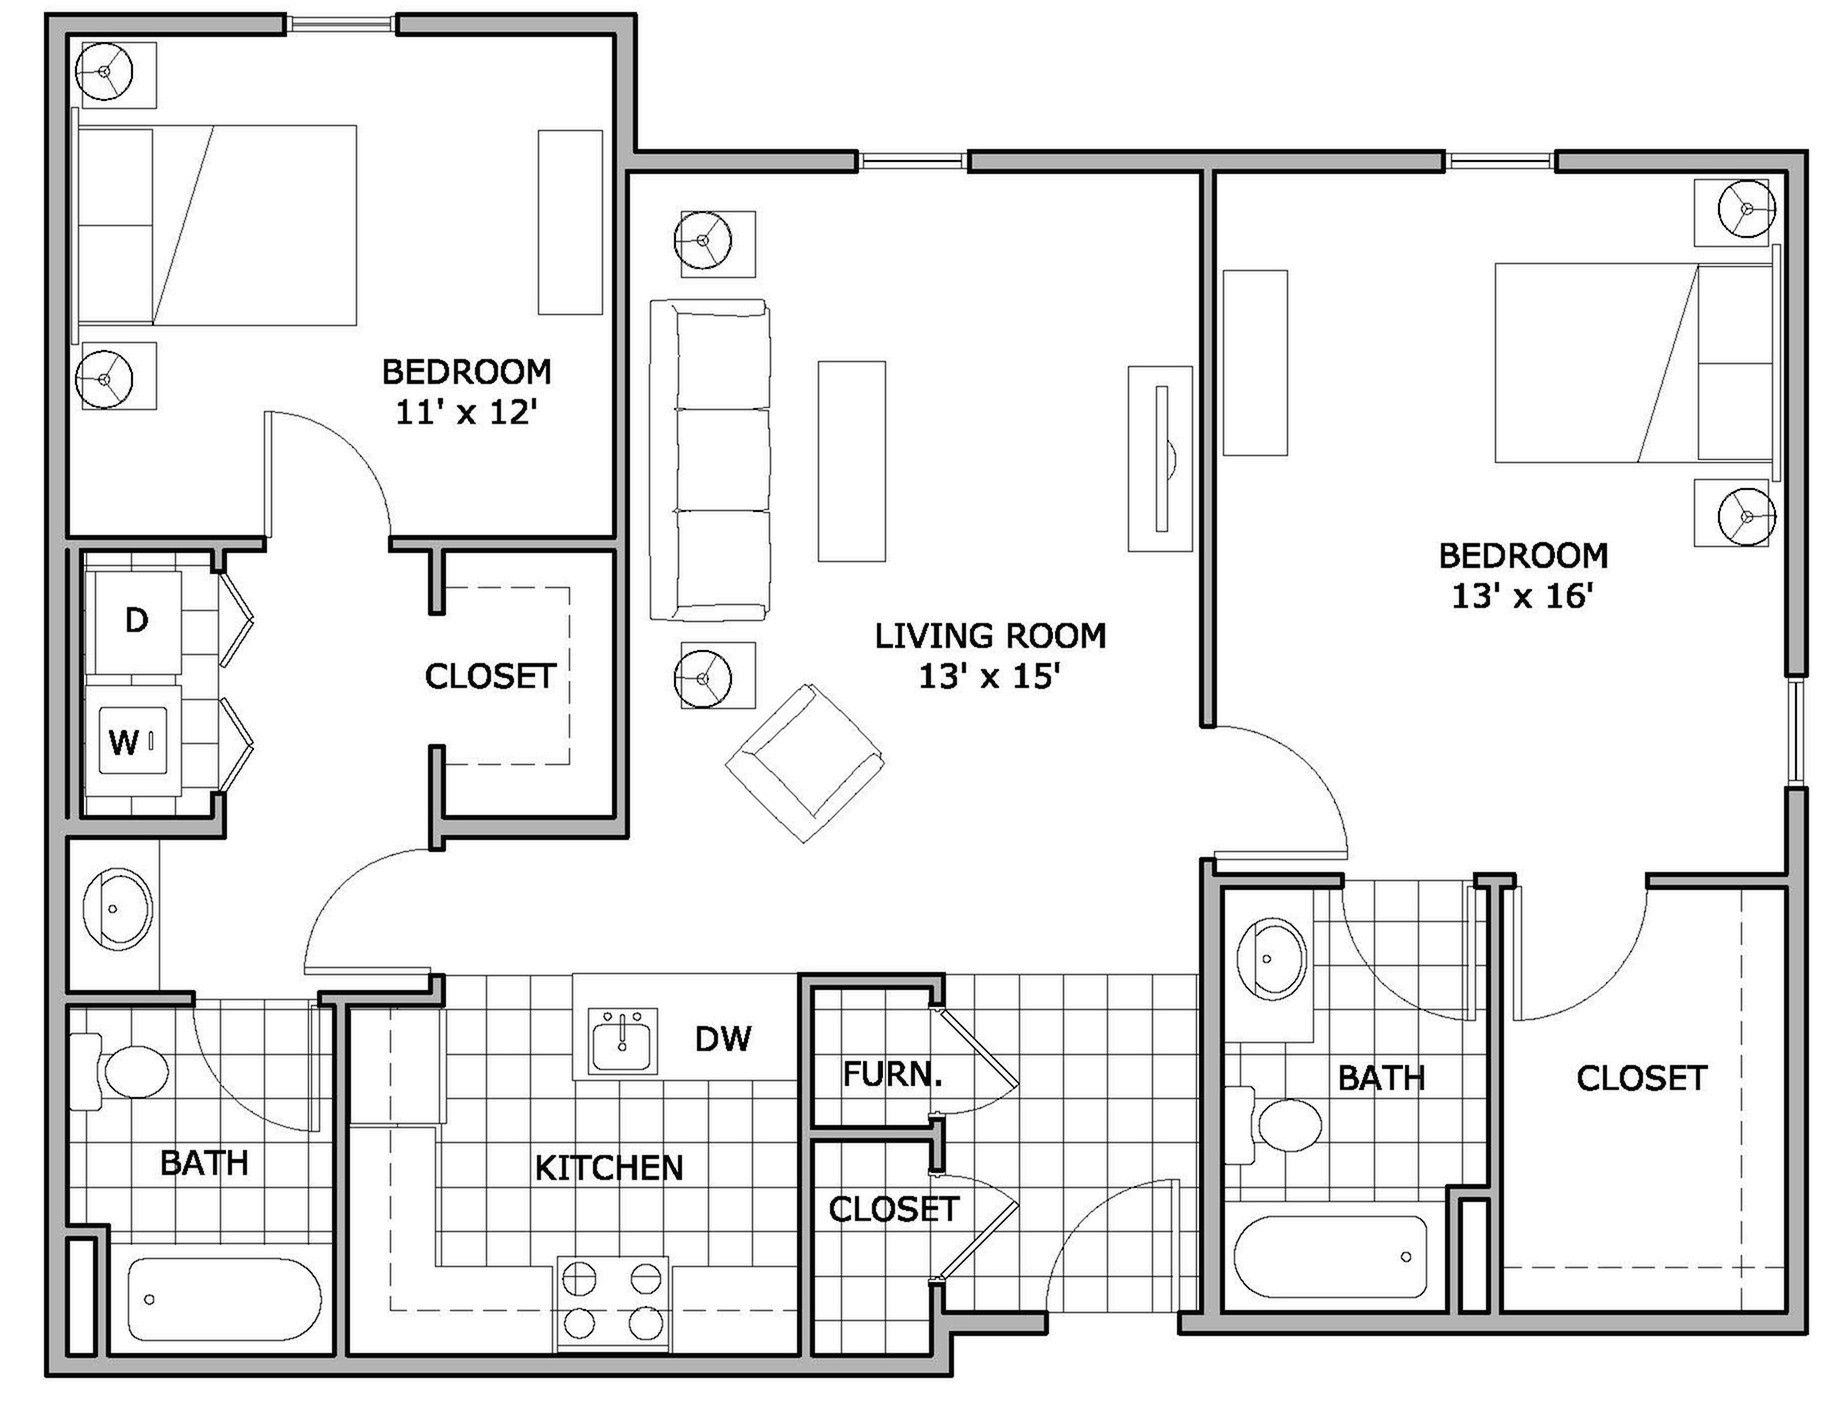 for the 2 Bedroom Phase 3 floor plan. 2 bedroom